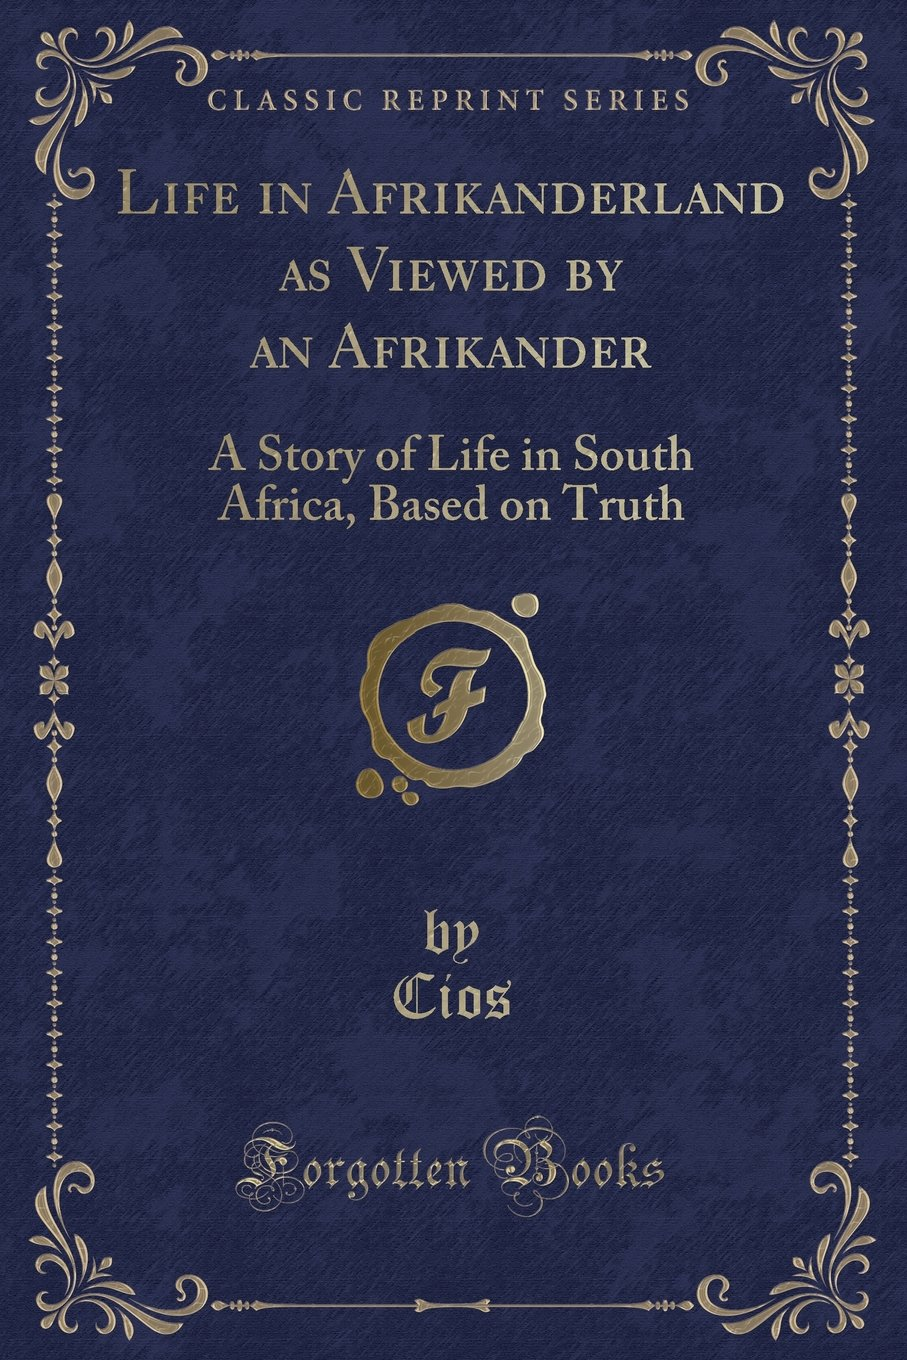 Life in Afrikanderland as Viewed by an Afrikander: A Story of Life in South Africa, Based on Truth (Classic Reprint) ebook